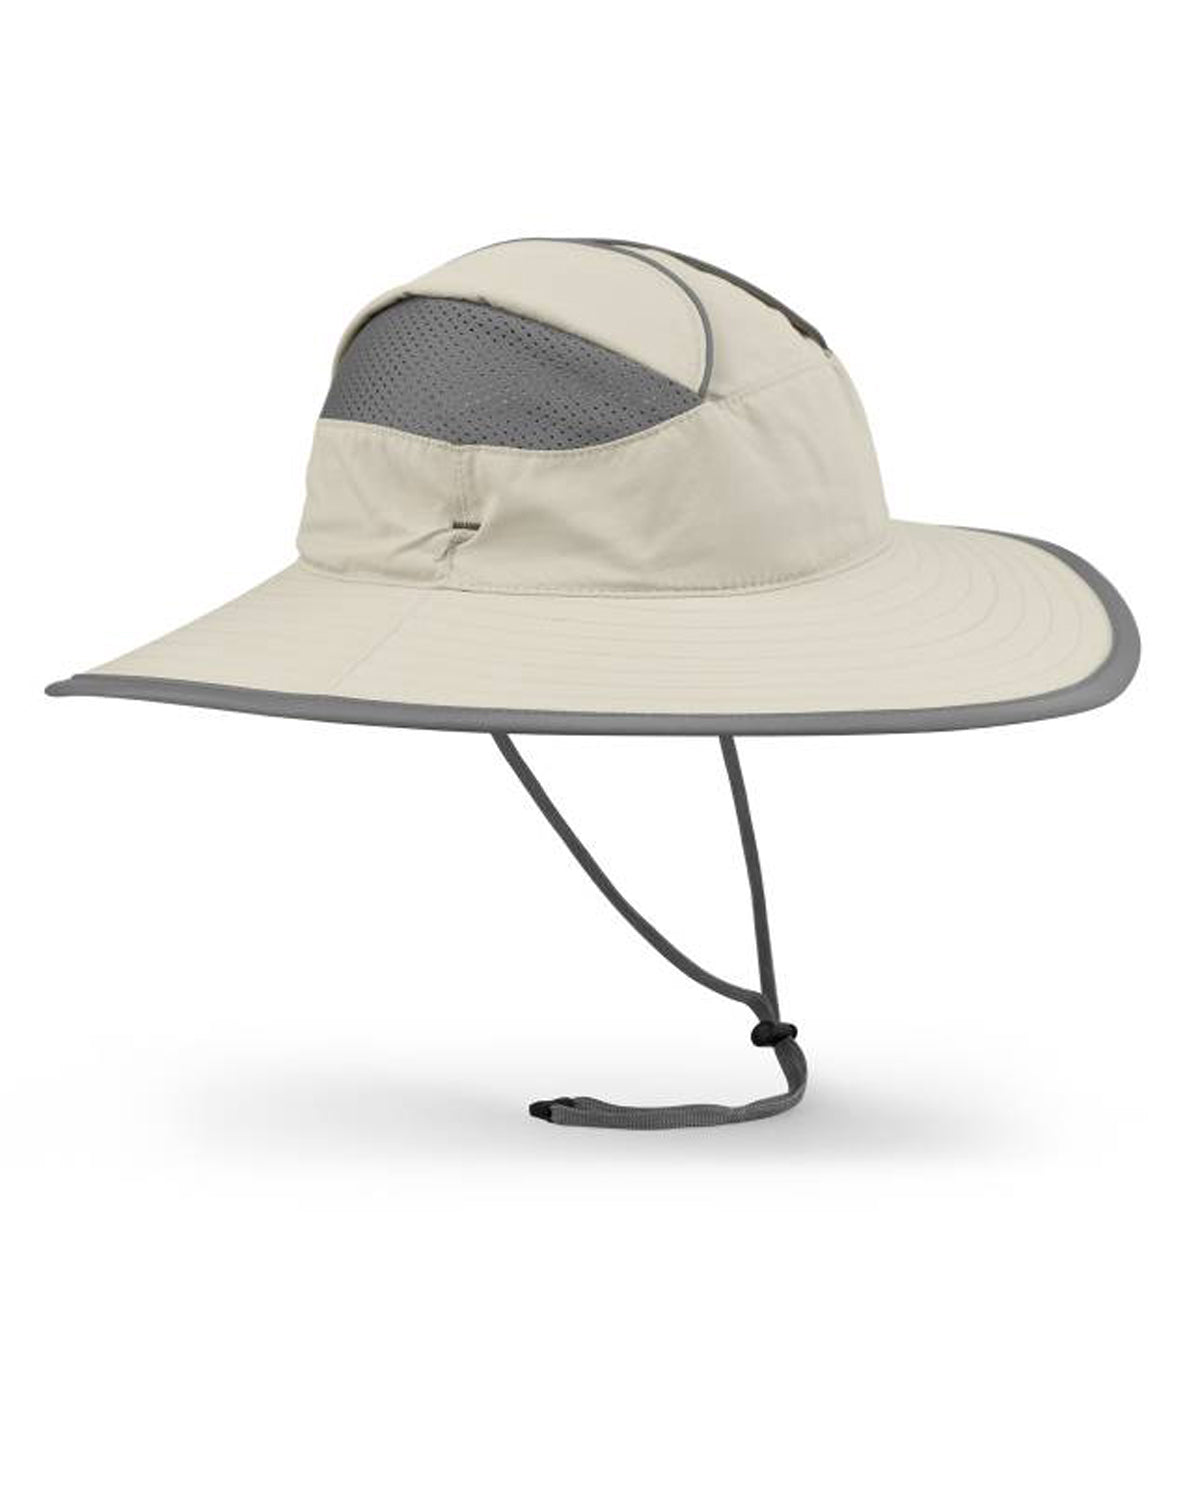 Compass Hat - Cream